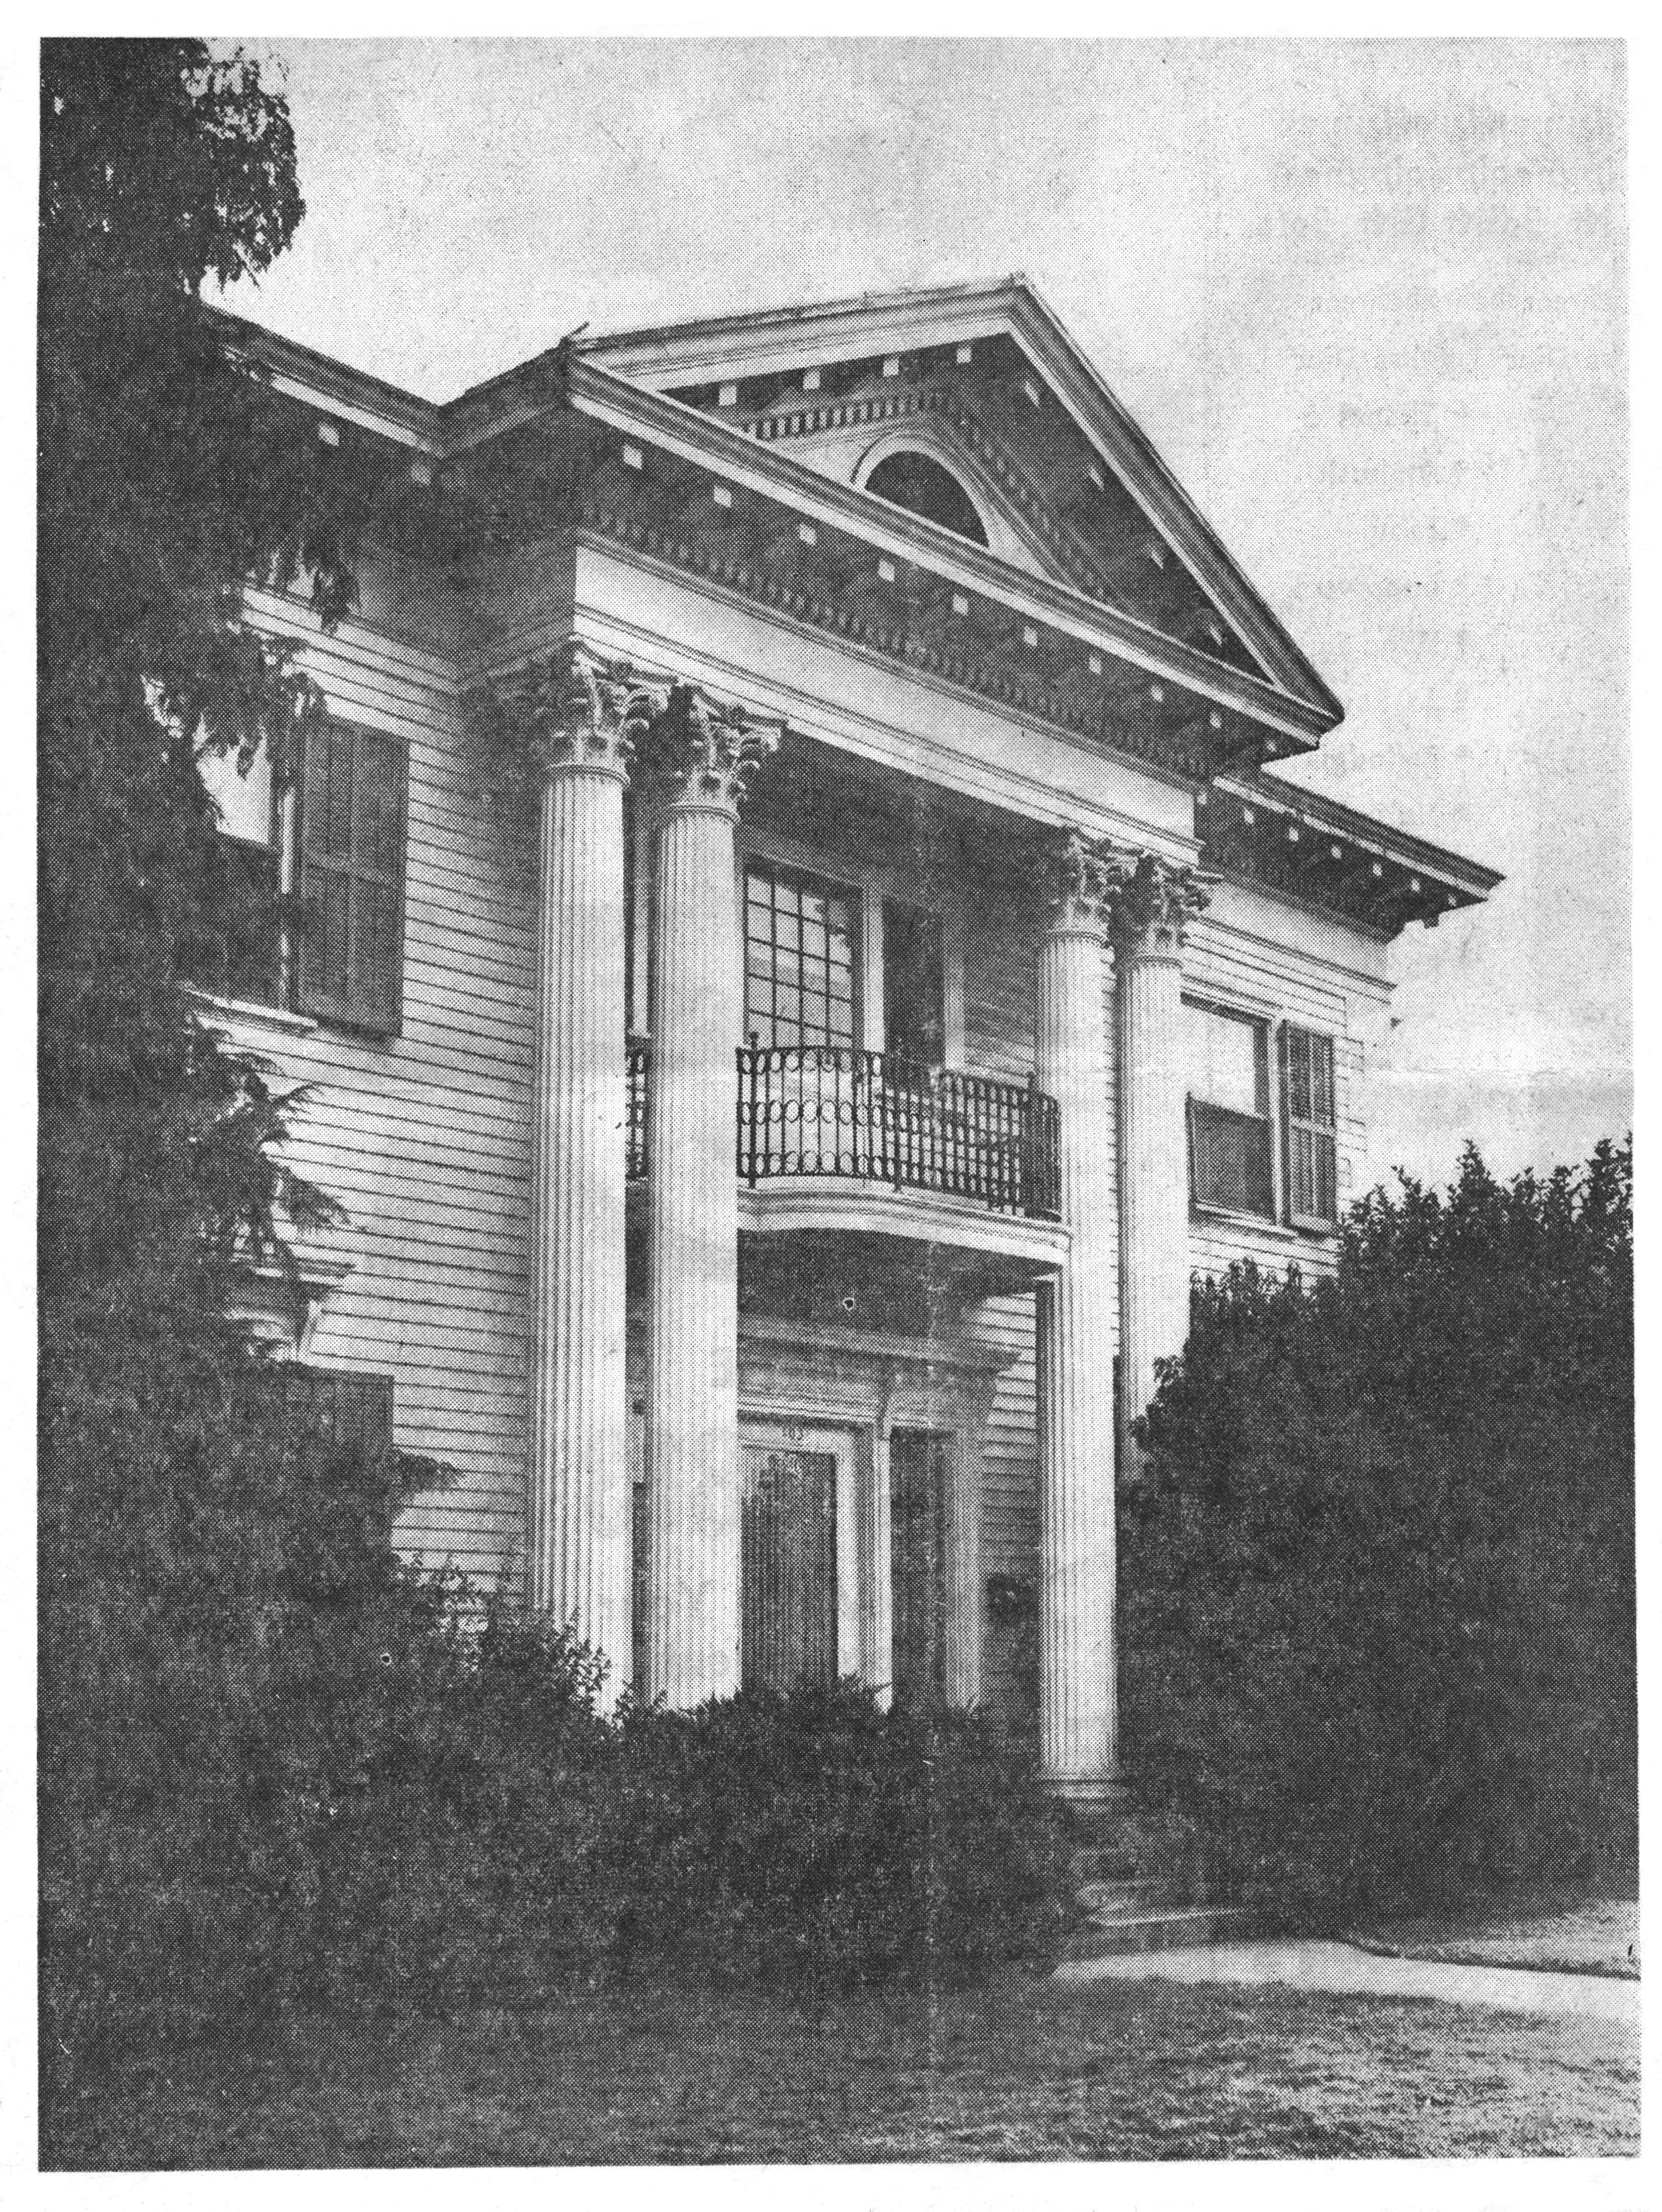 Vawter House, December 10, 1967 Medford Mail Tribune